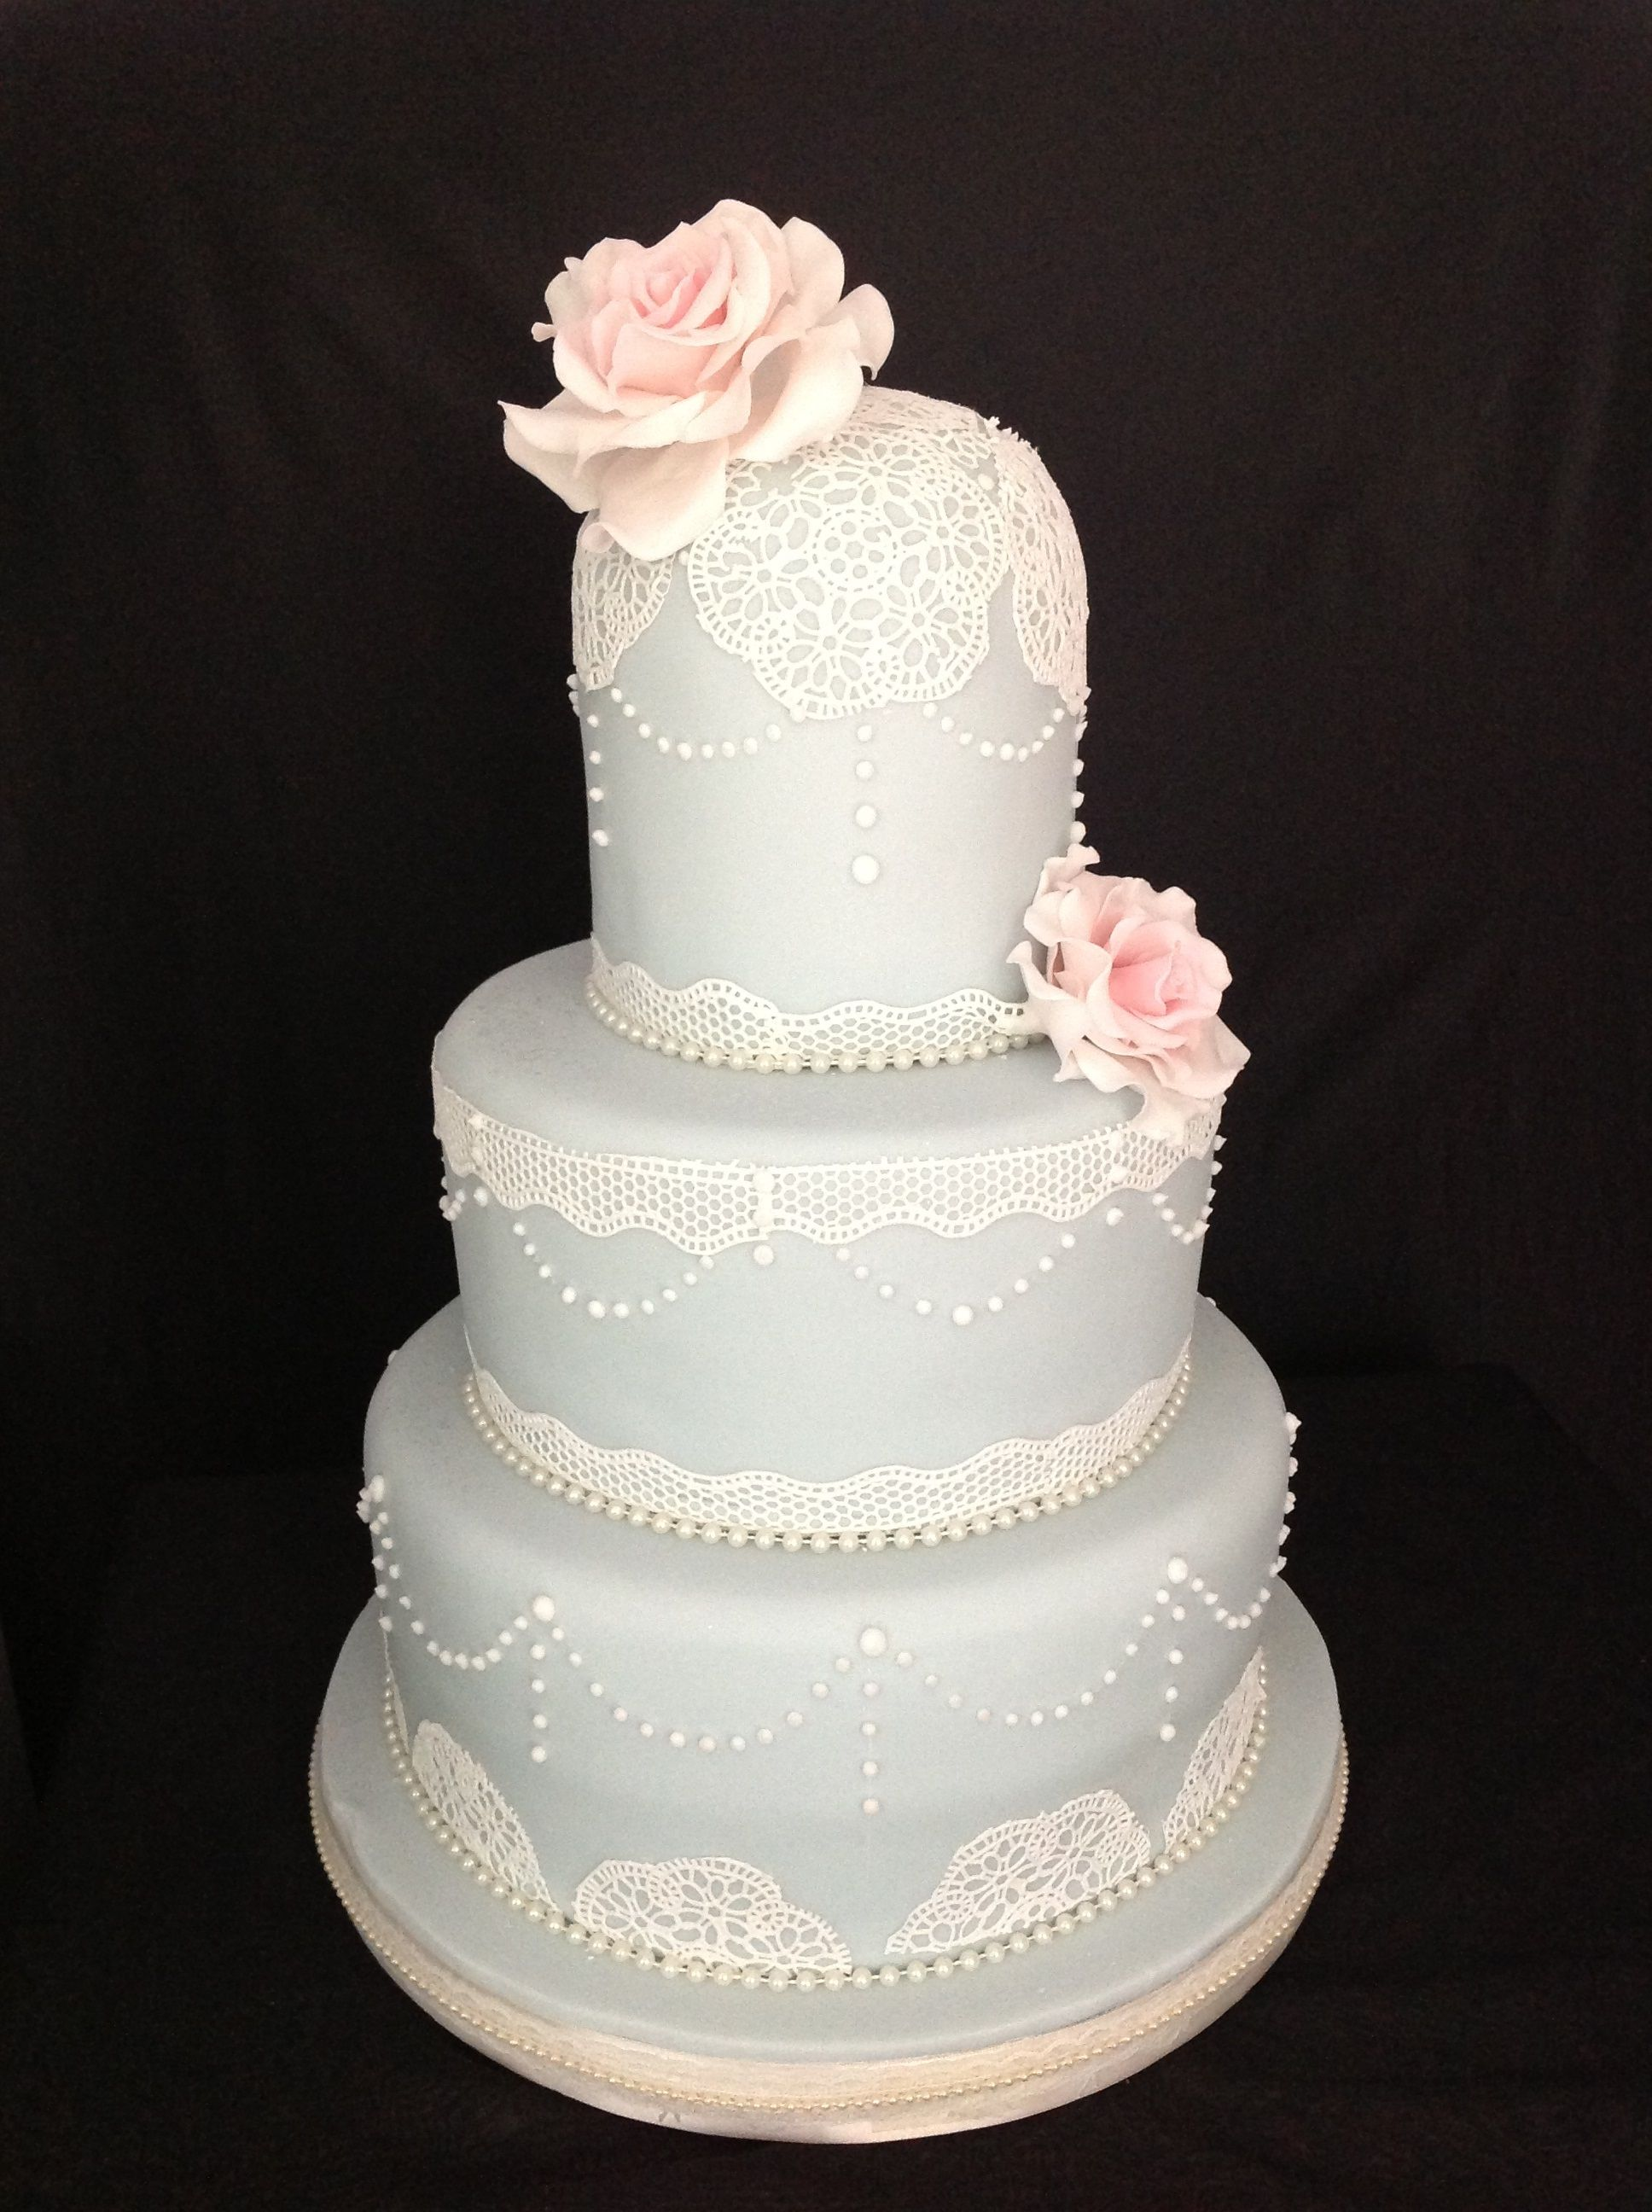 Attractive Wedding Cakes Staffordshire Pictures - Wedding Idea 2018 ...